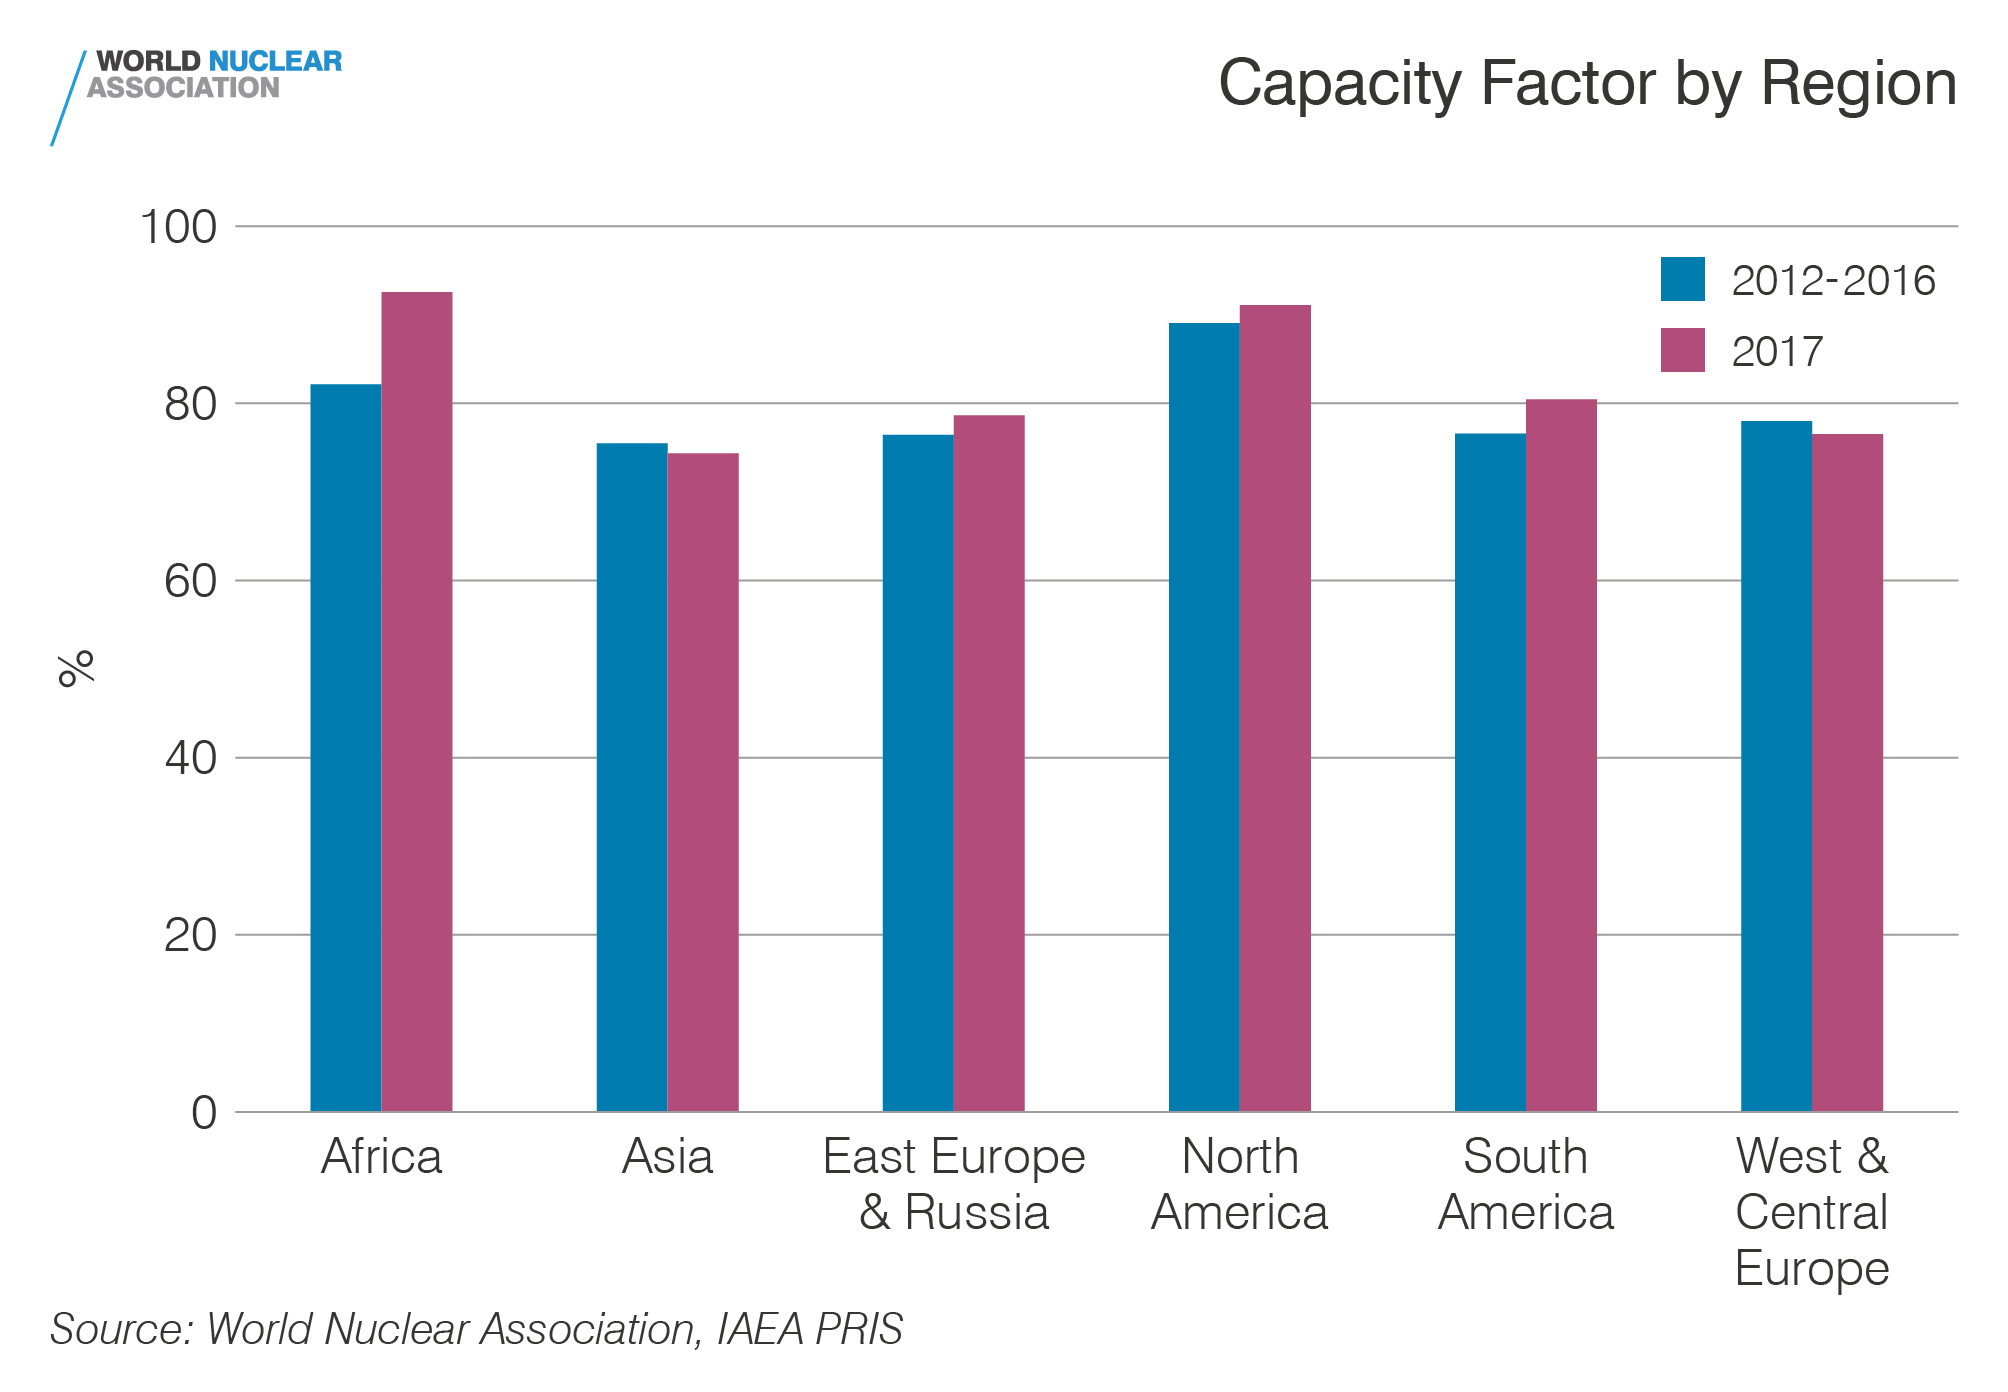 Capacity factor by region